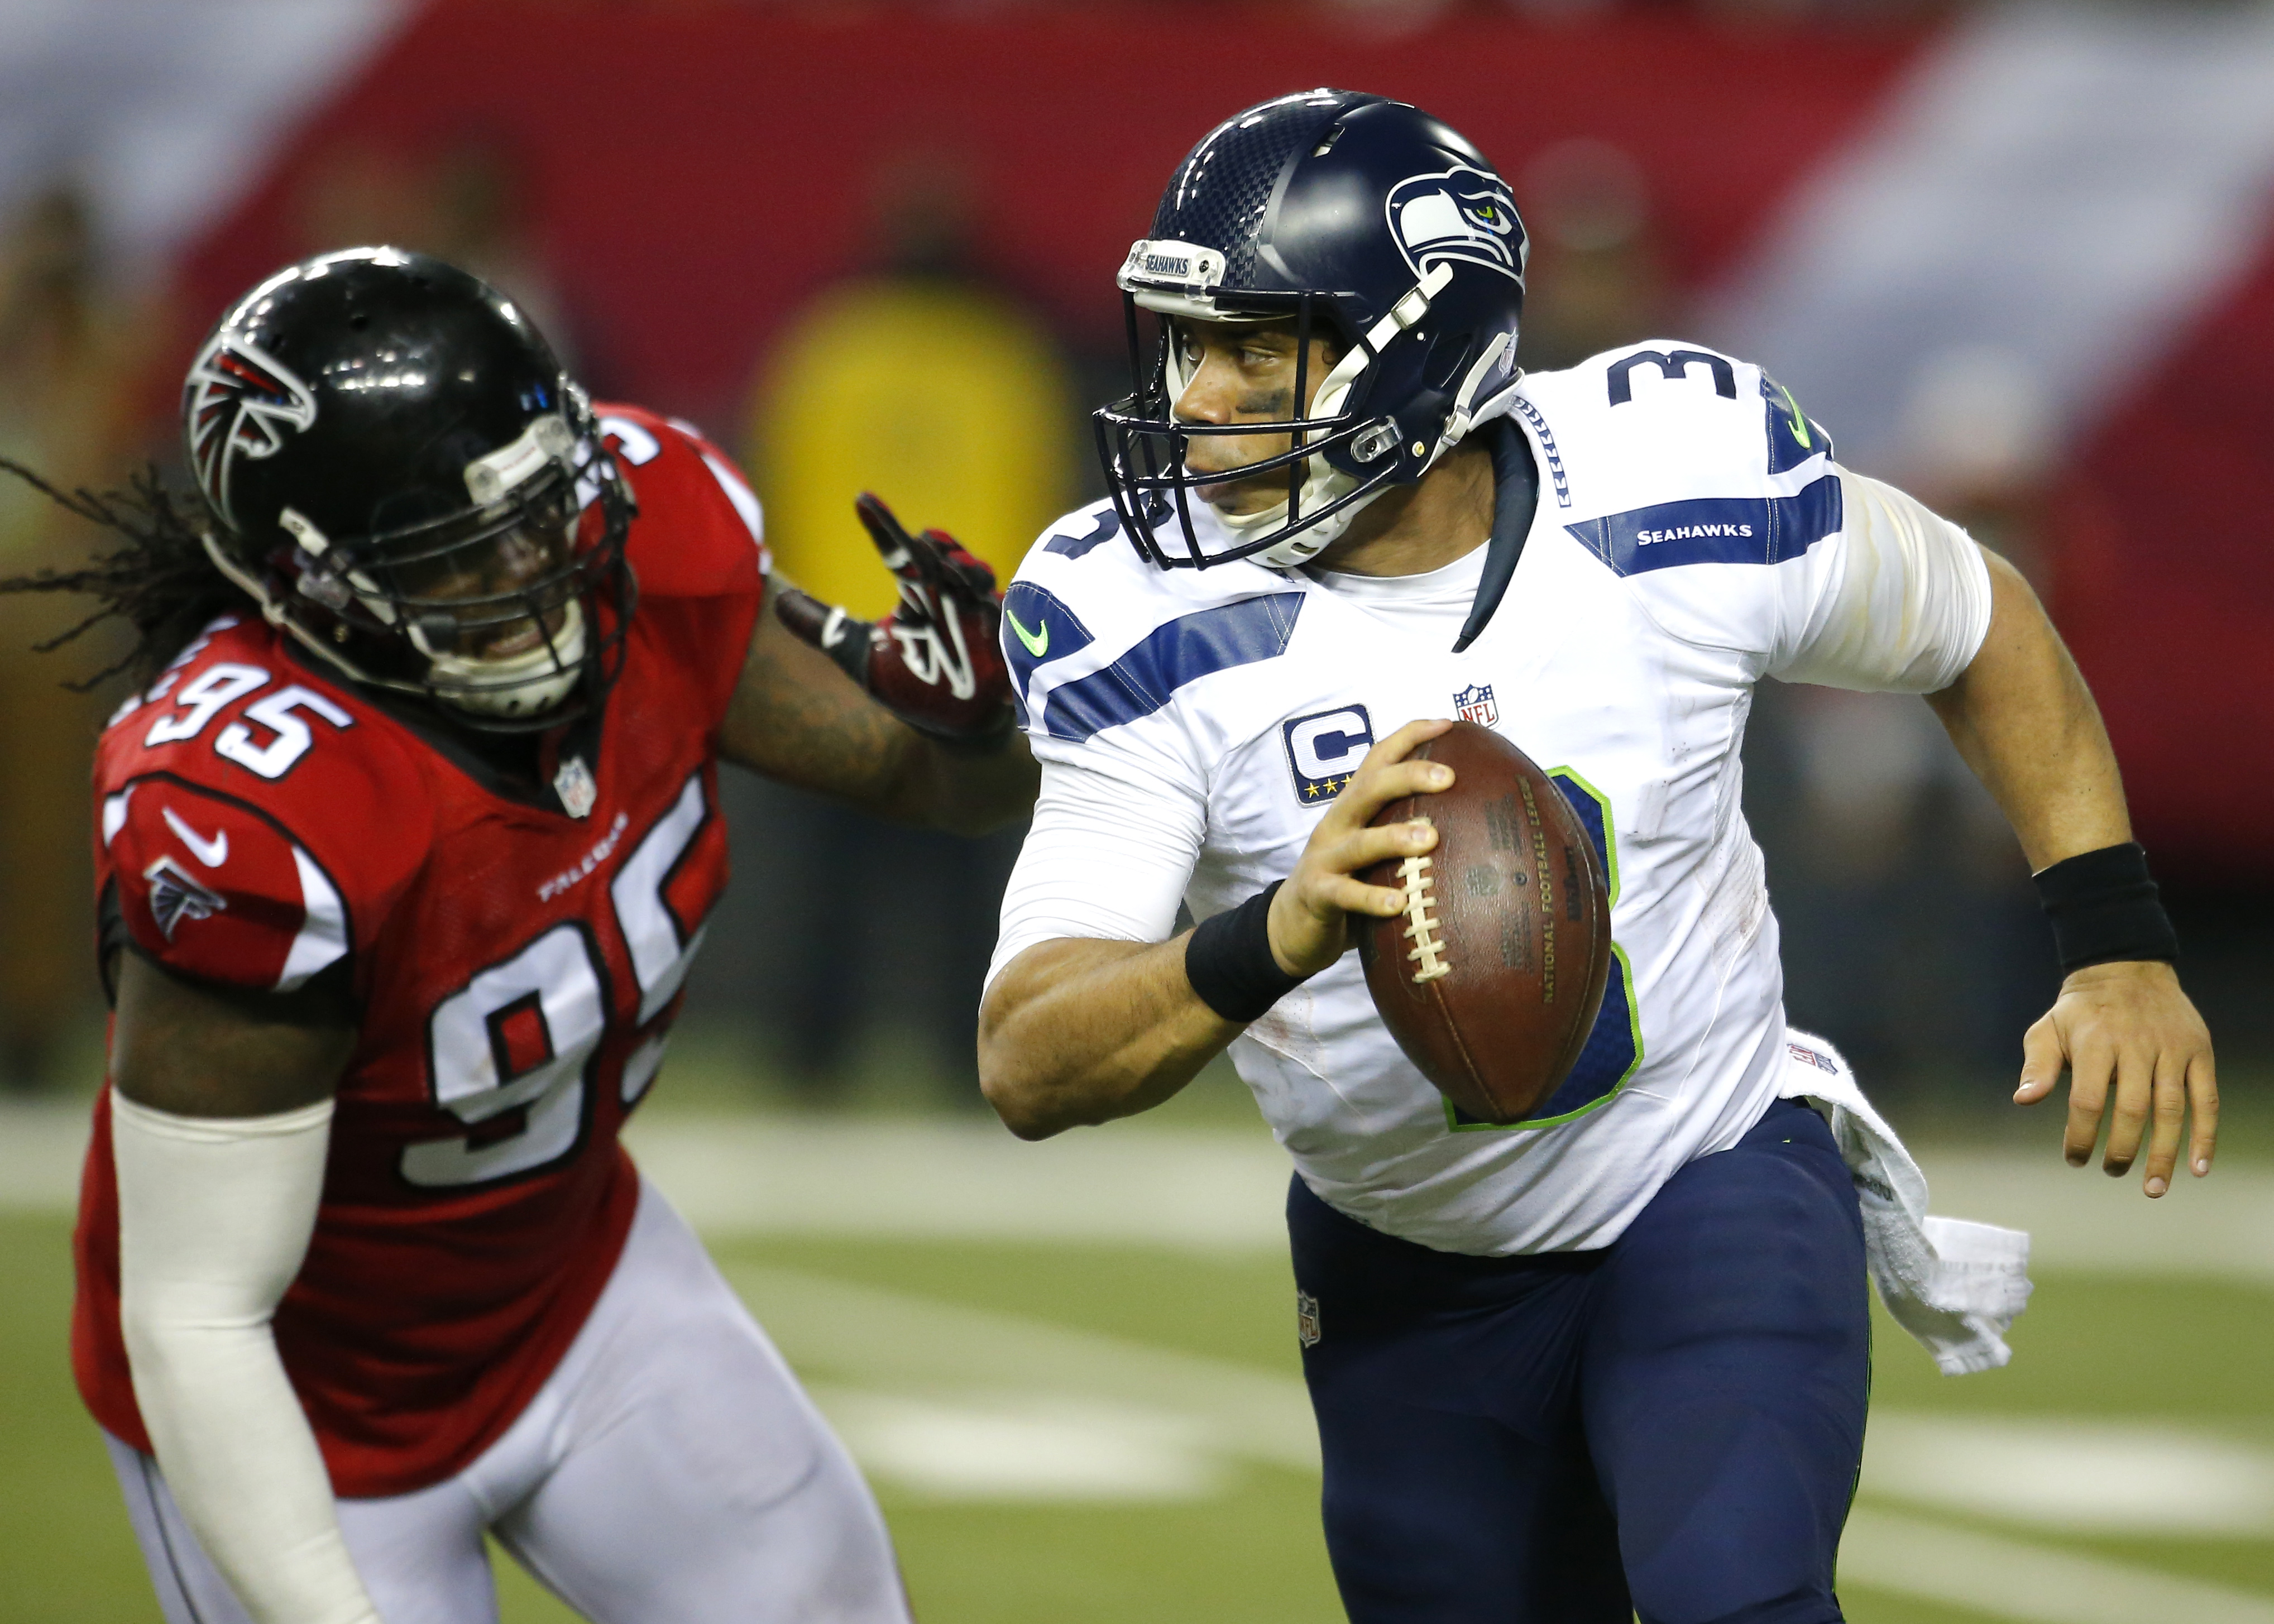 NFL: JAN 14 NFC Divisional Playoff - Seahawks at Falcons